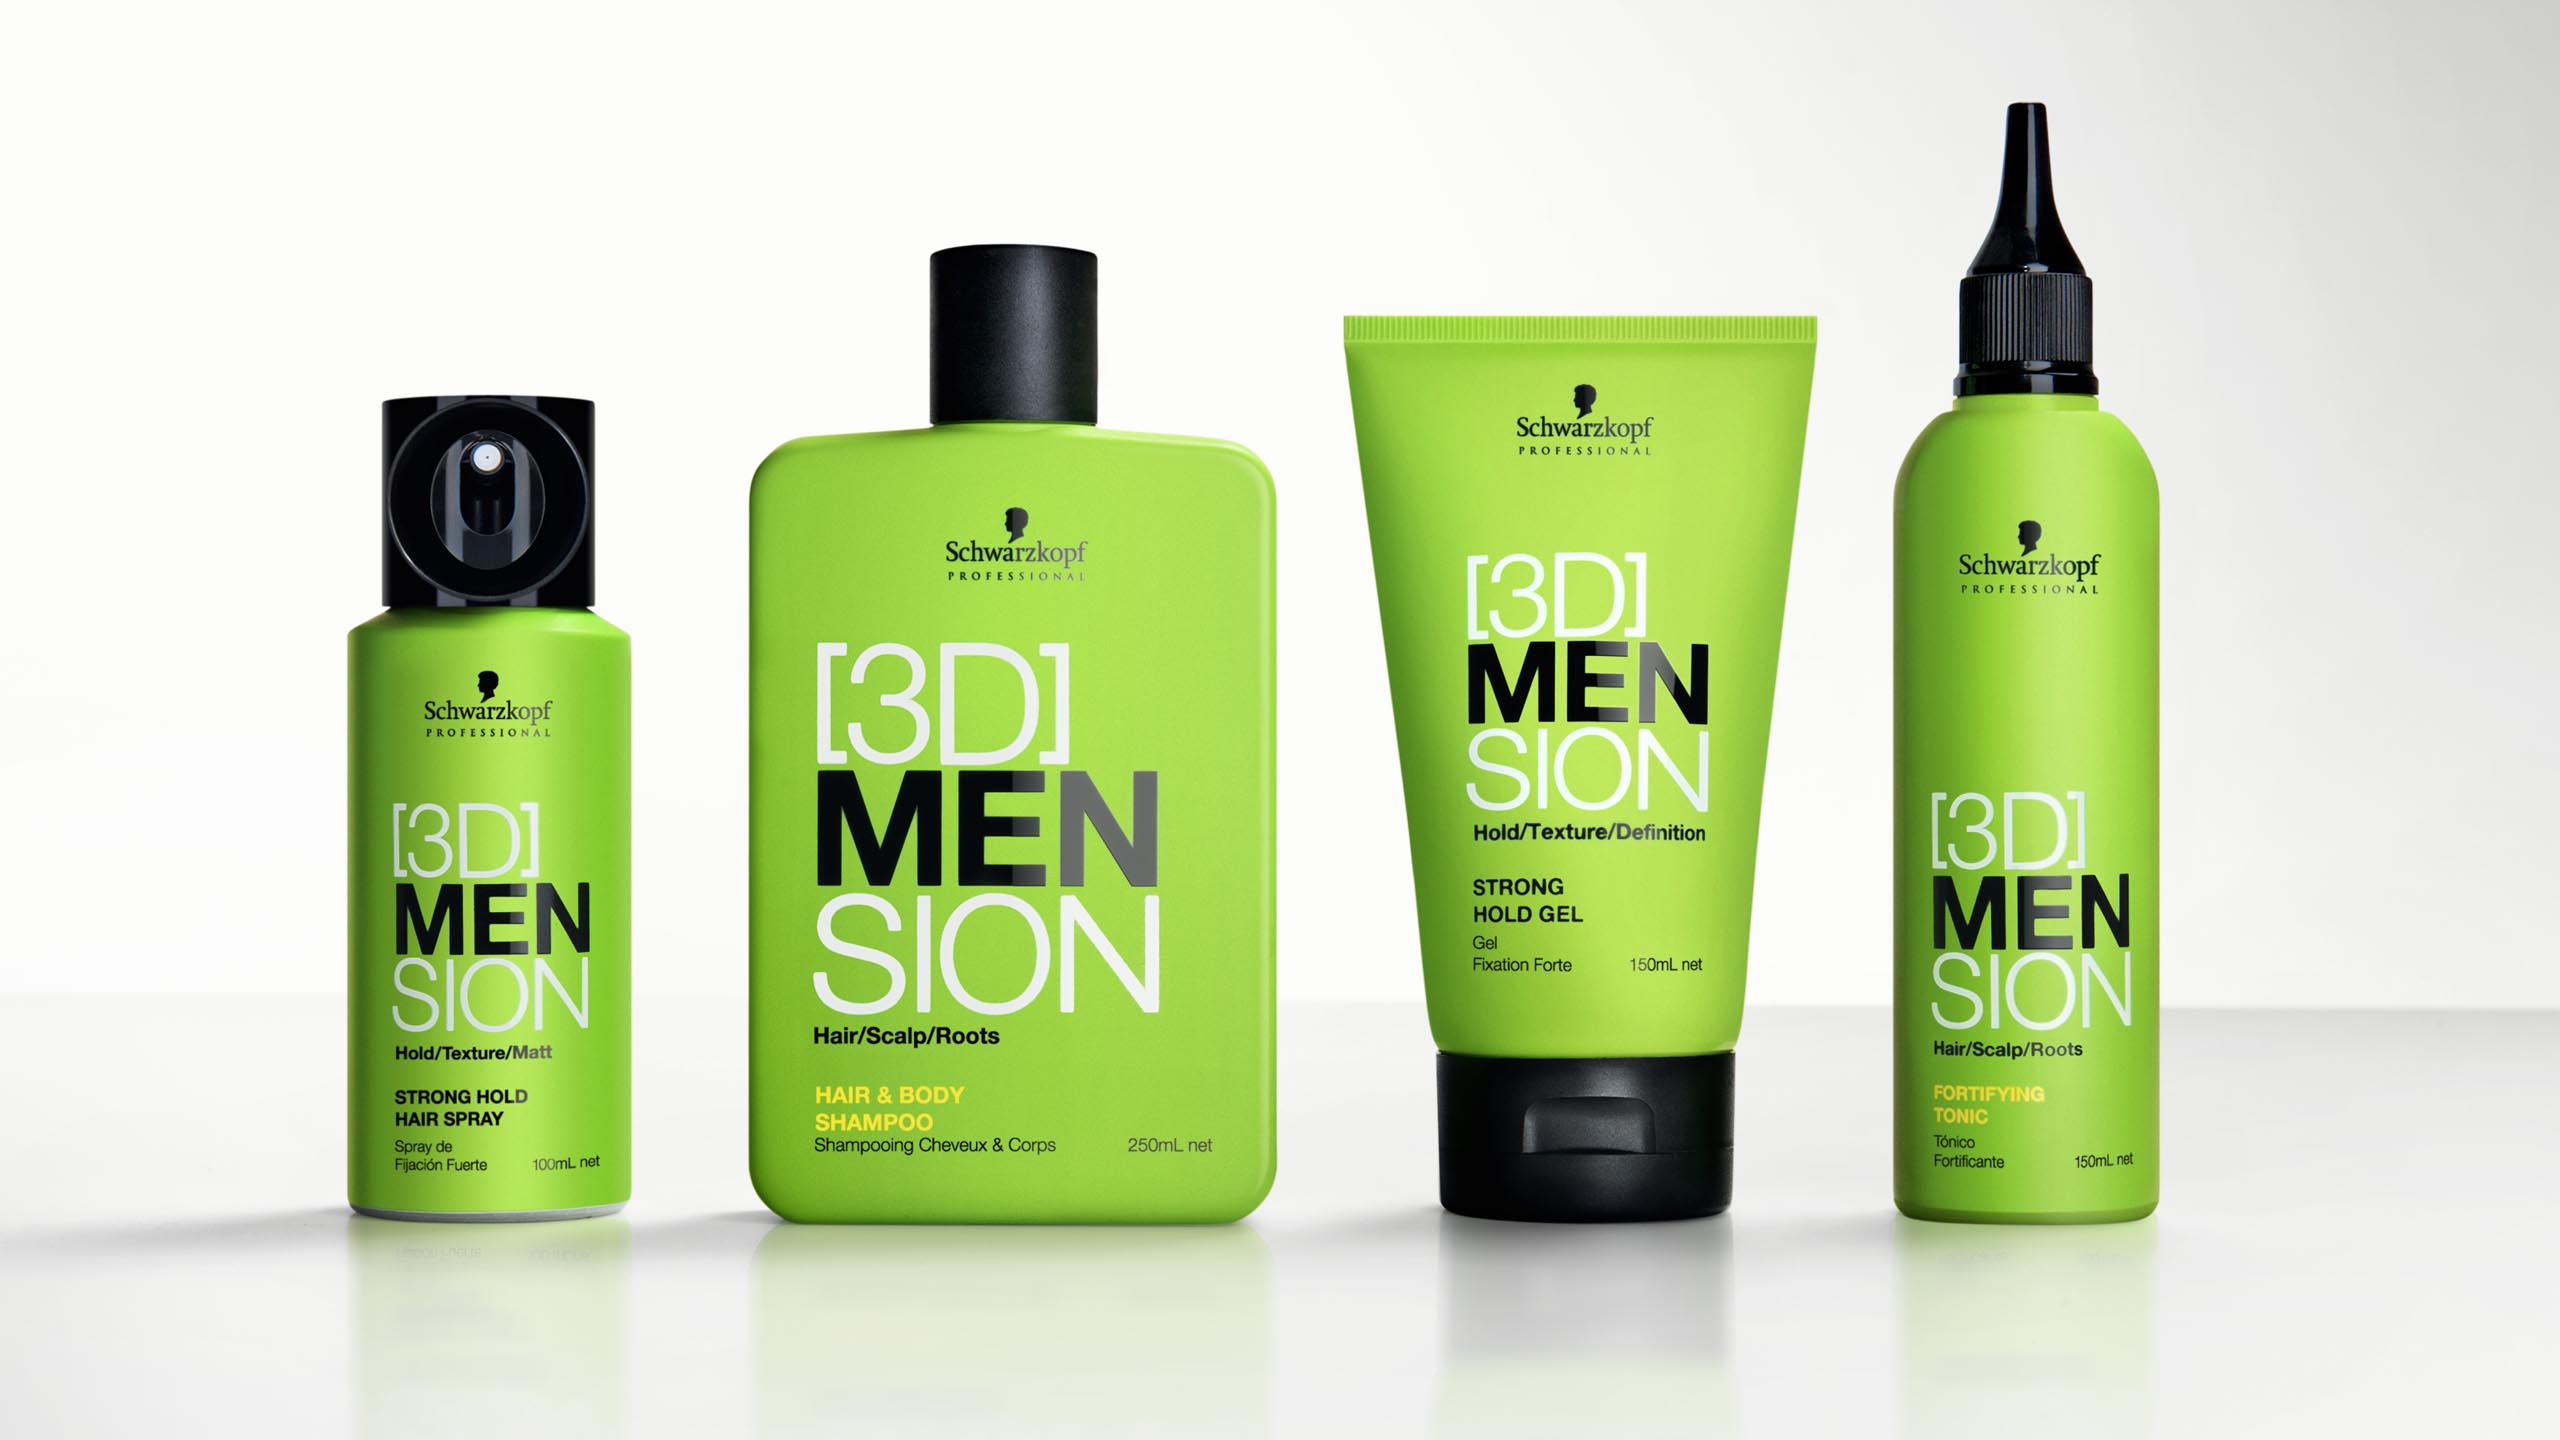 branding and packaging design 3D MENsion Schwarzopf Professional